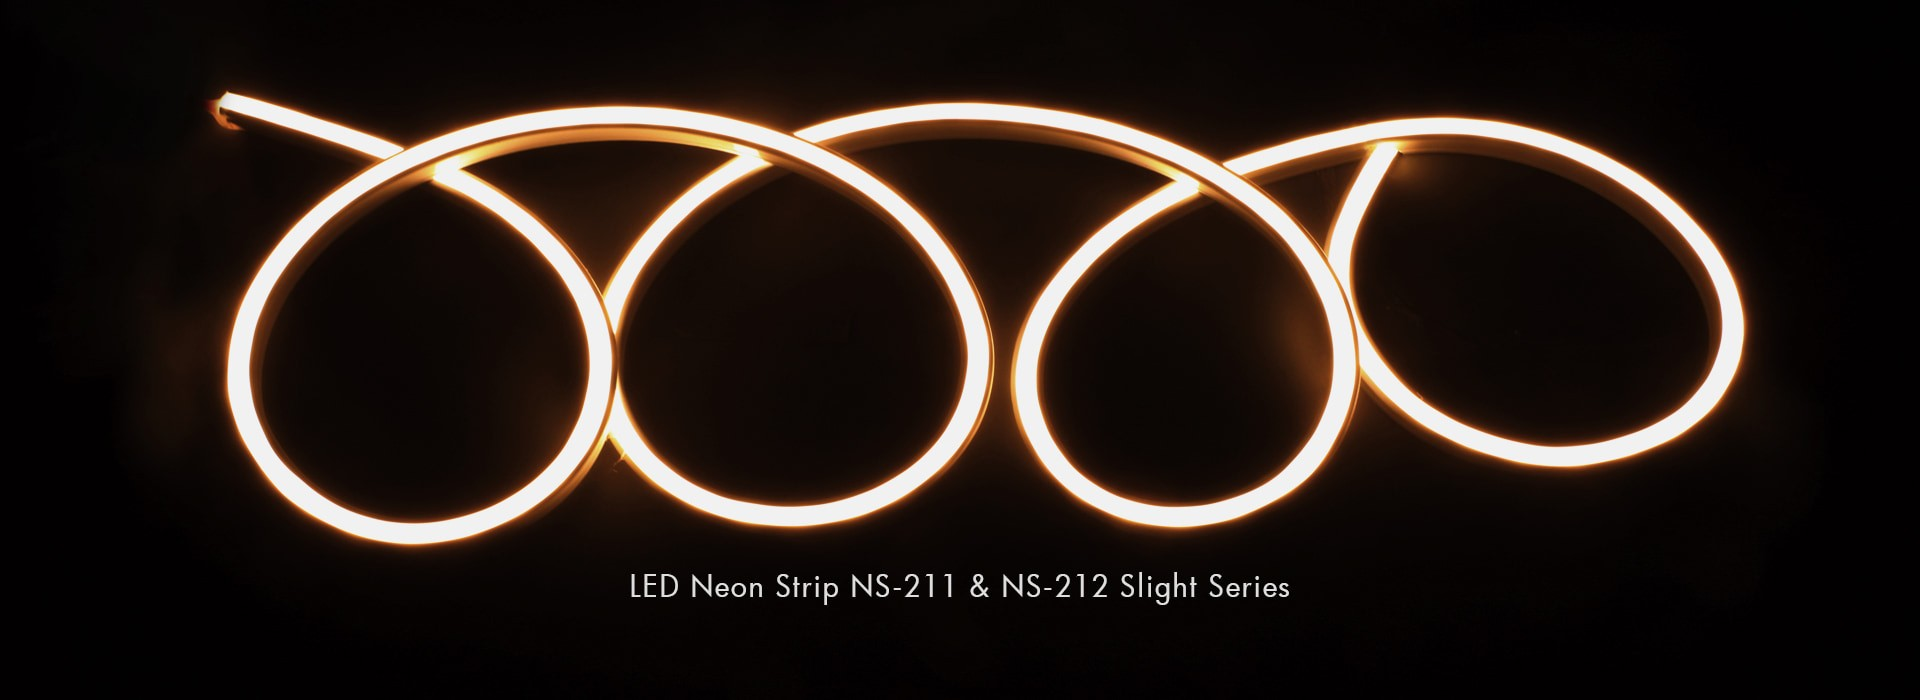 LED Neon Strip NS-211 & NS-212 Slight Series